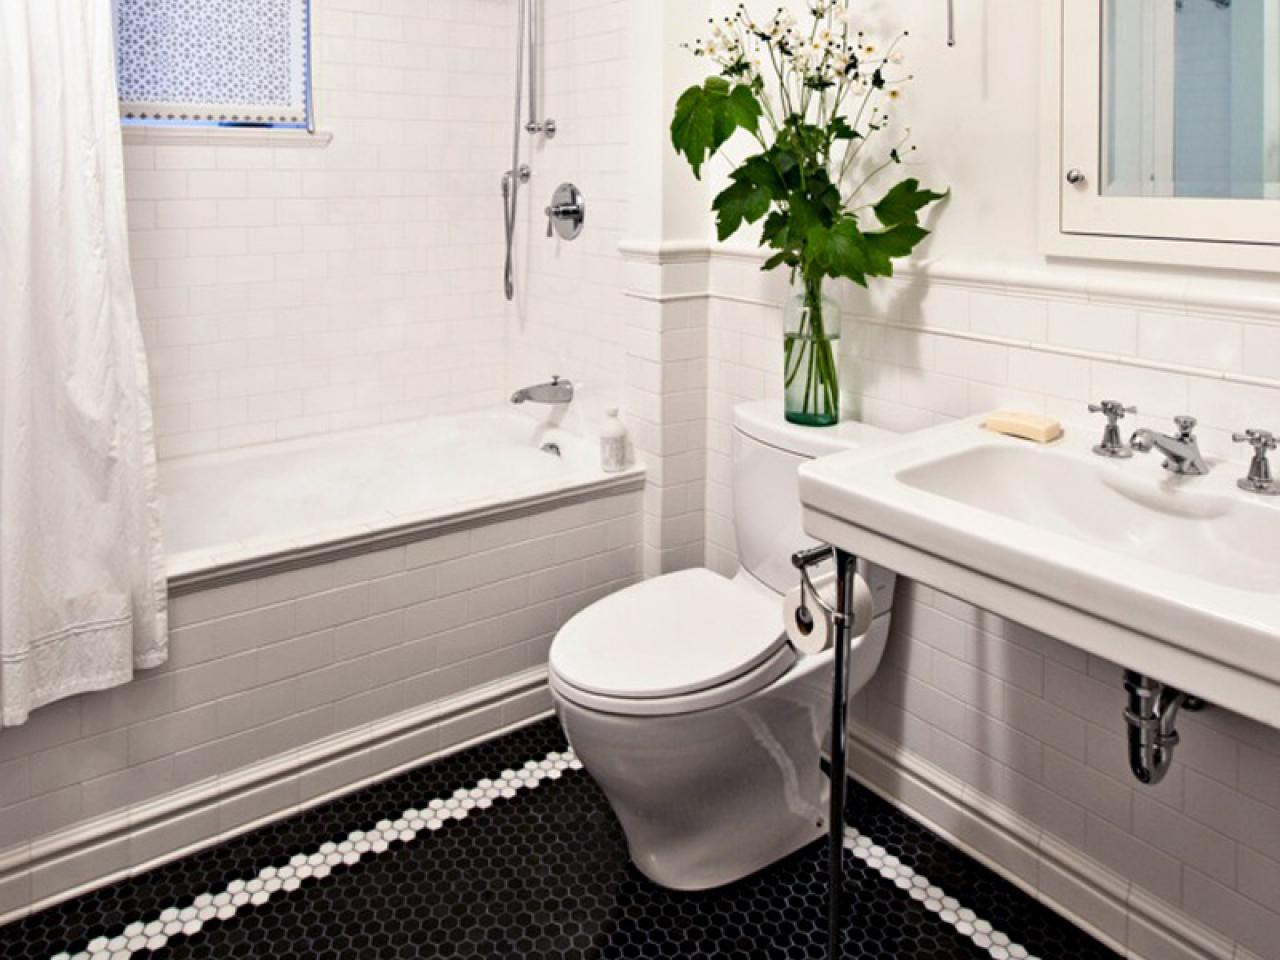 Bathroom Floor Tile Design Pictures : Black and white bathroom designs ideas